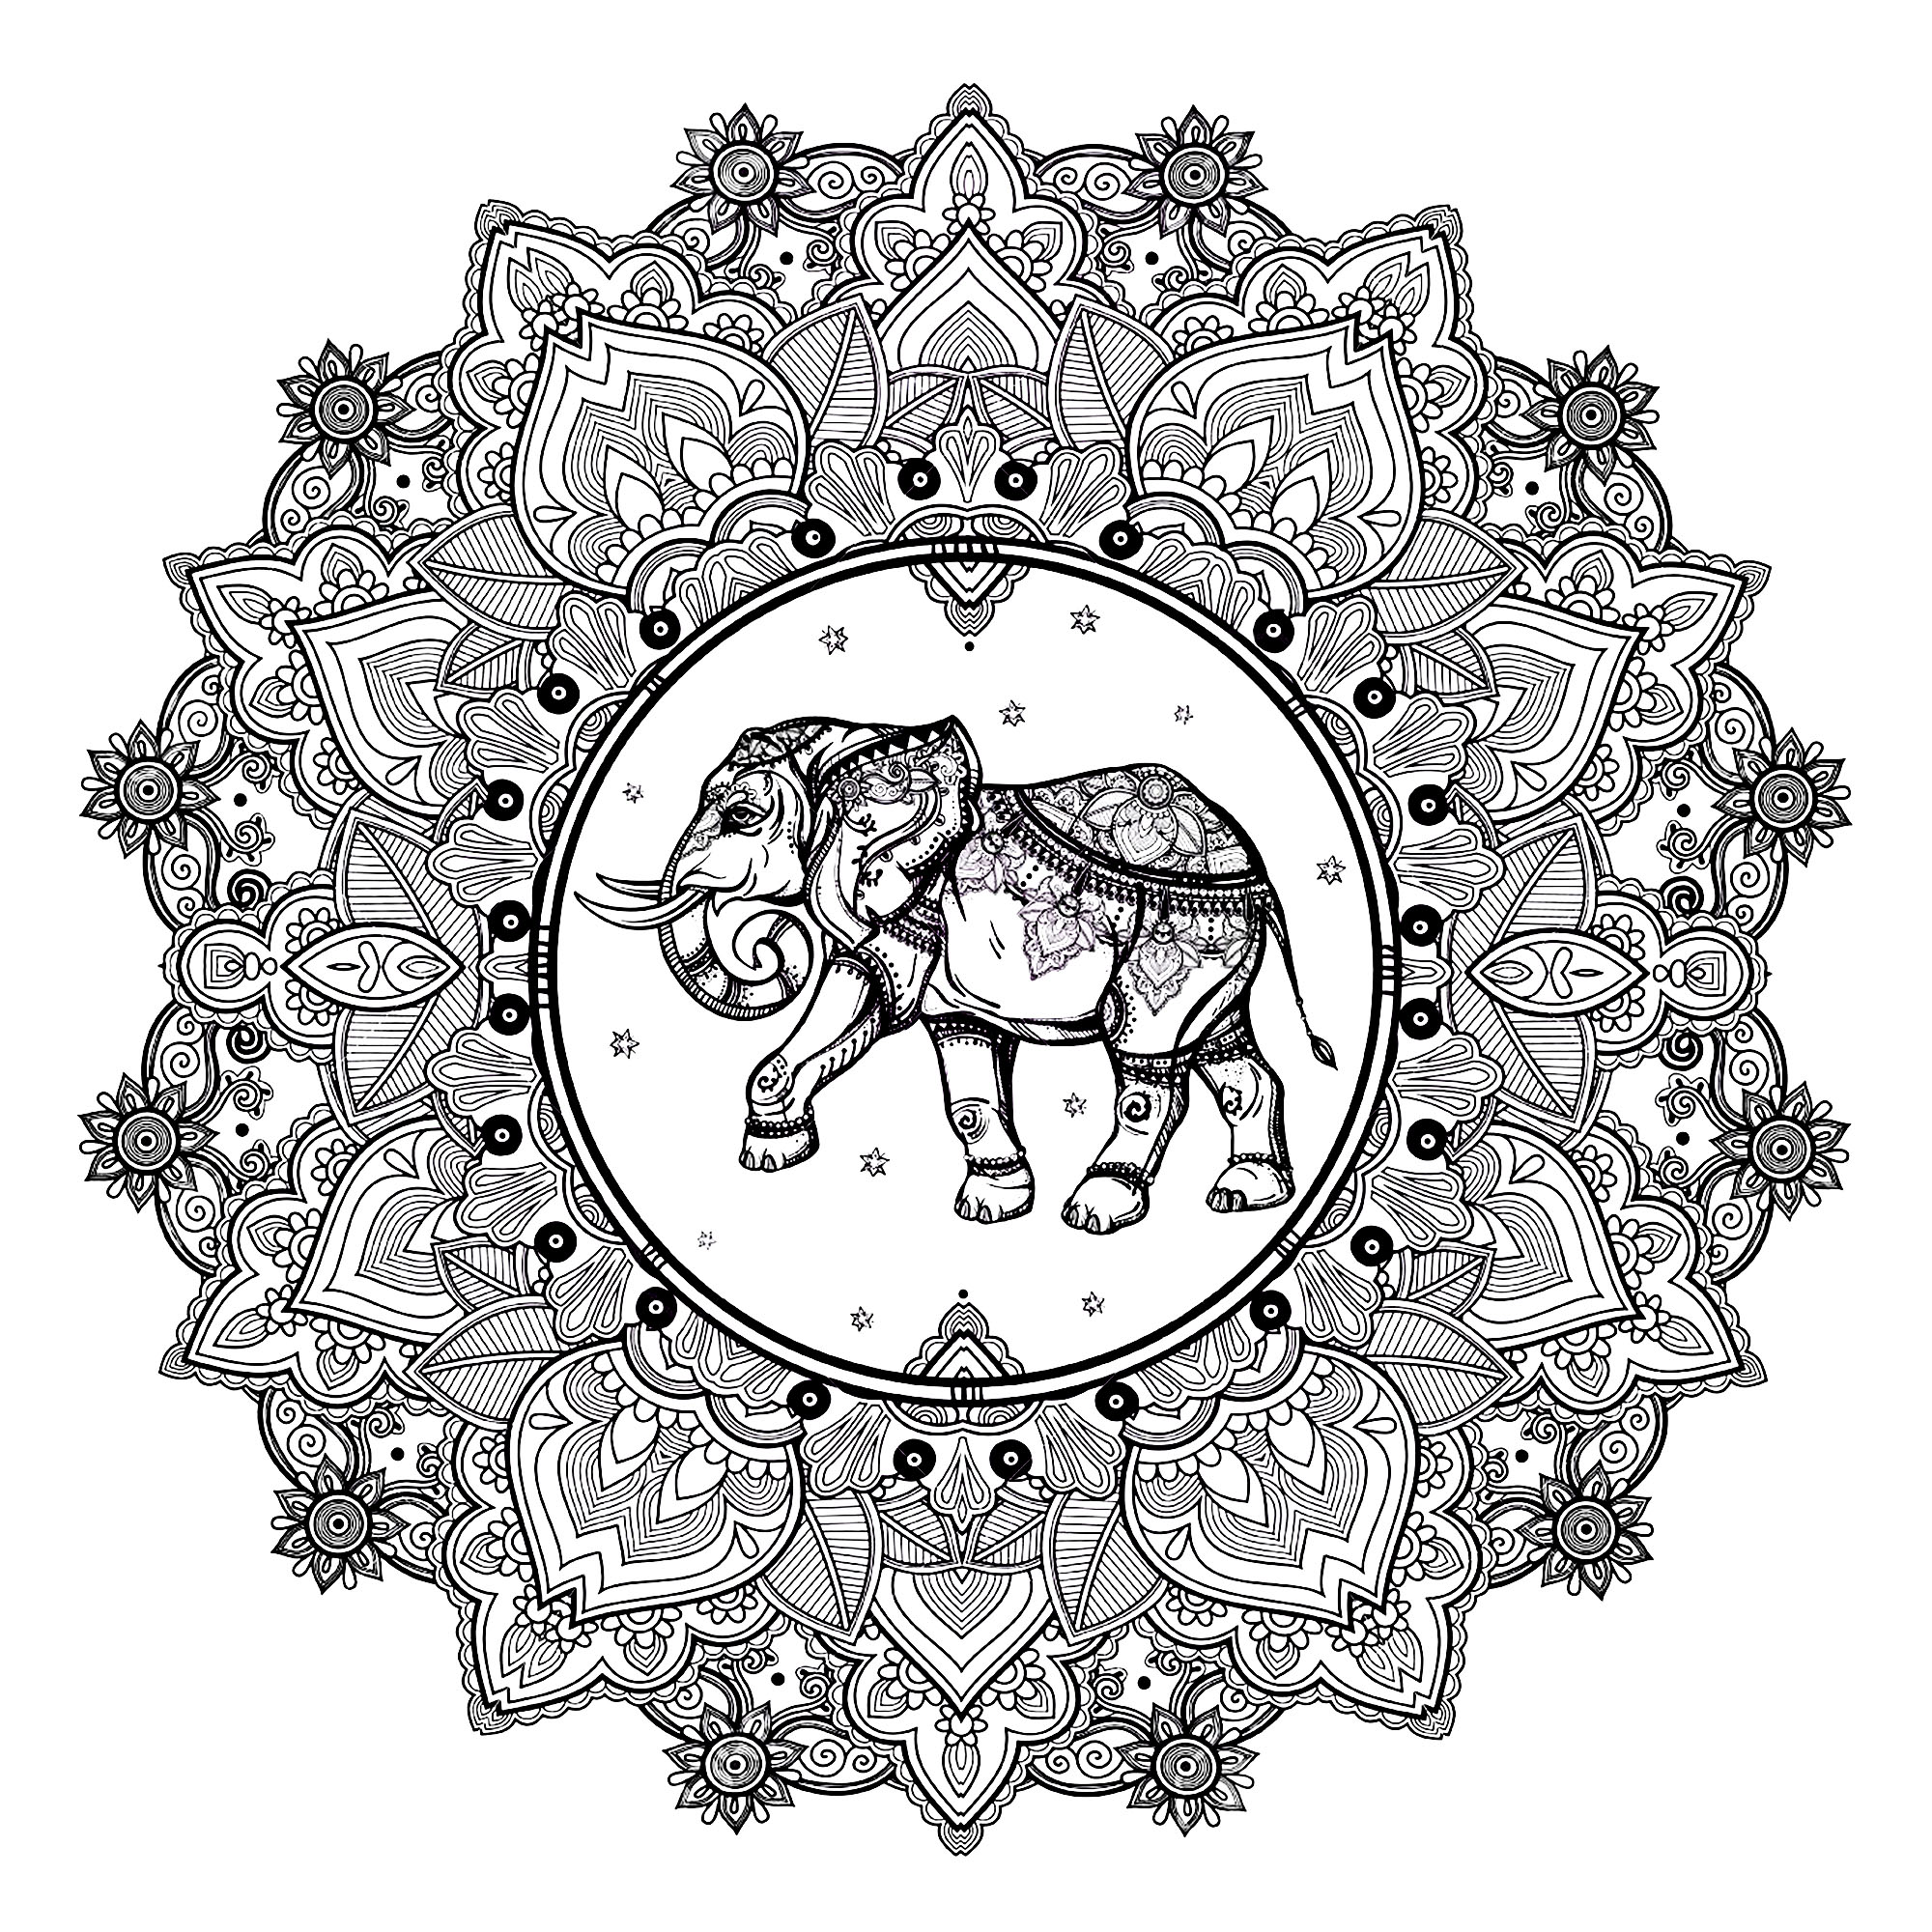 Mandala elephant 123rf - M&alas Adult Coloring Pages